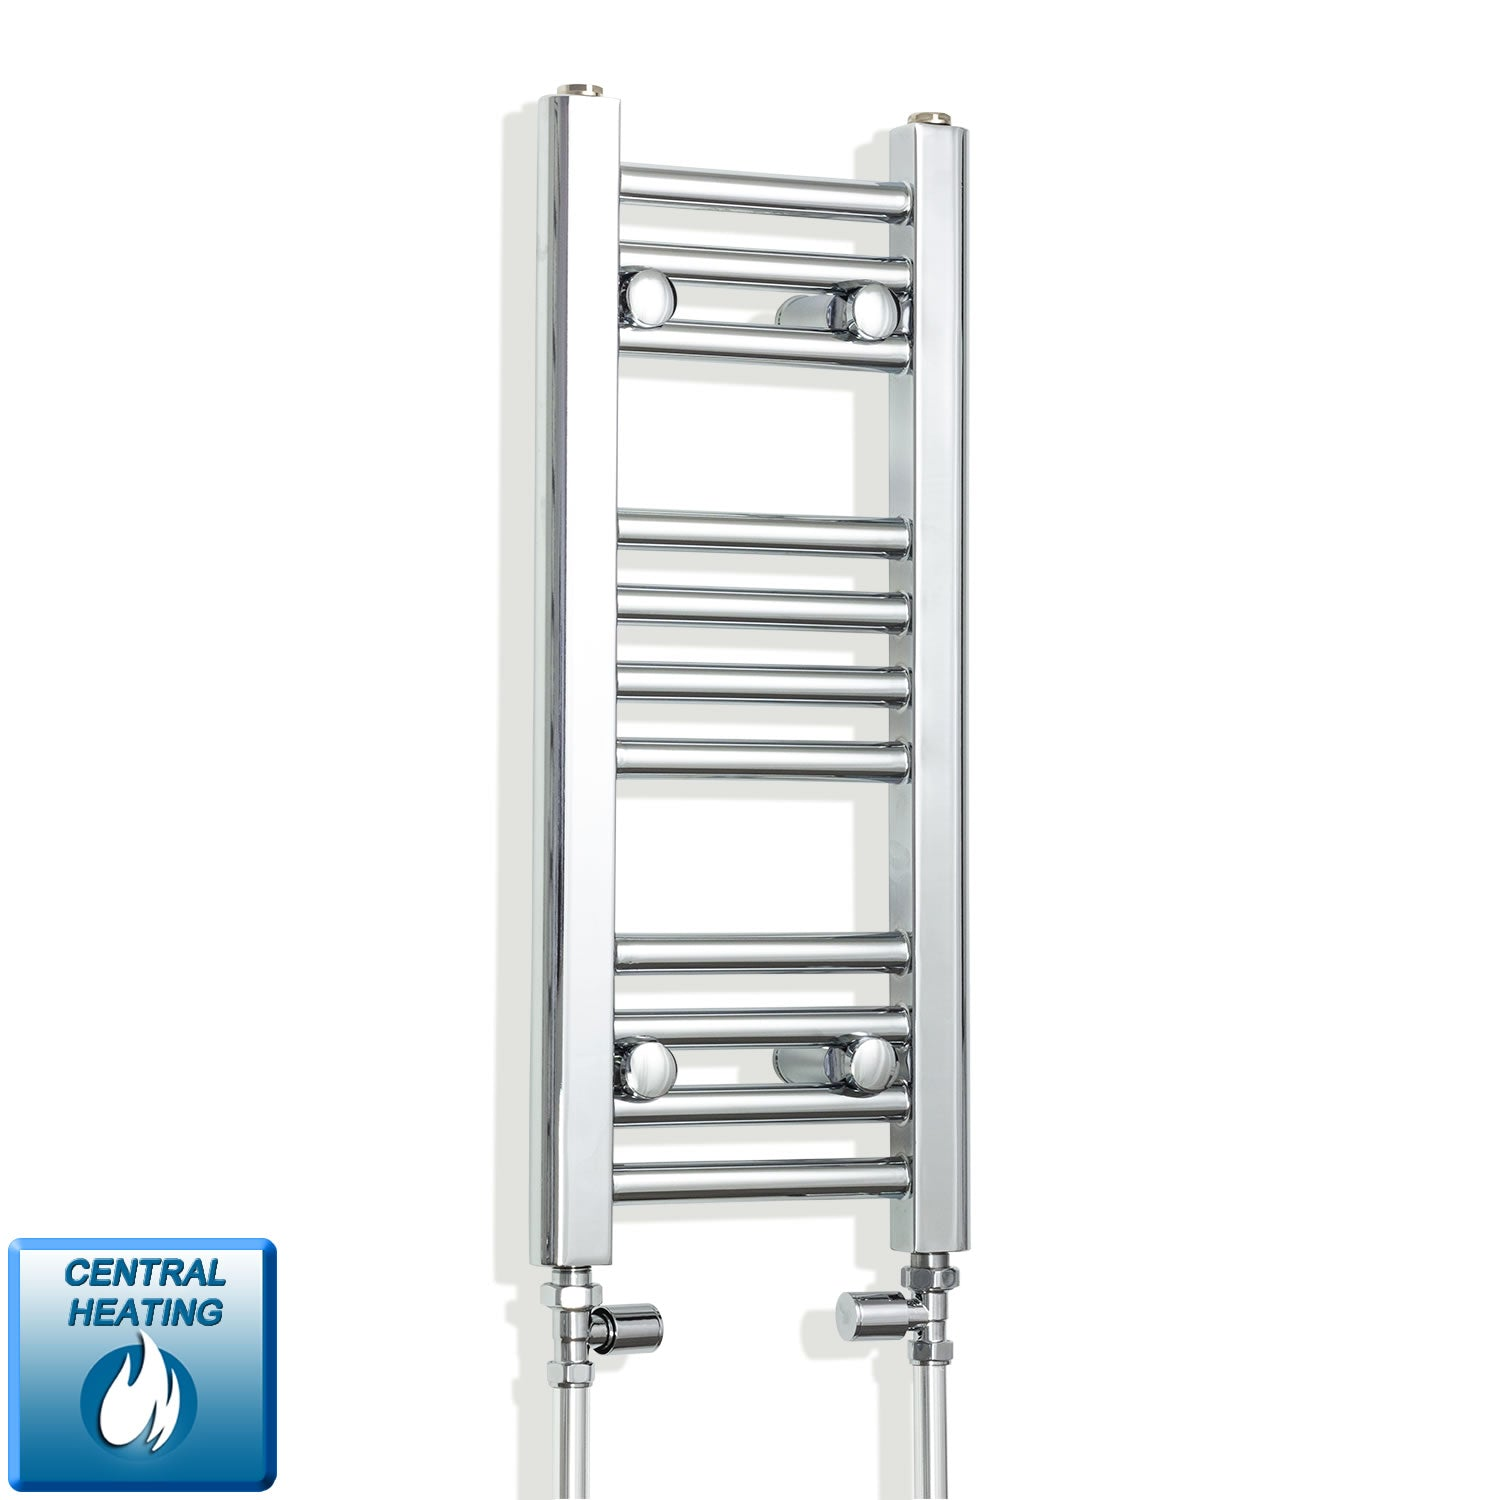 250mm Wide 600mm High Chrome Towel Rail Radiator With Straight Valve